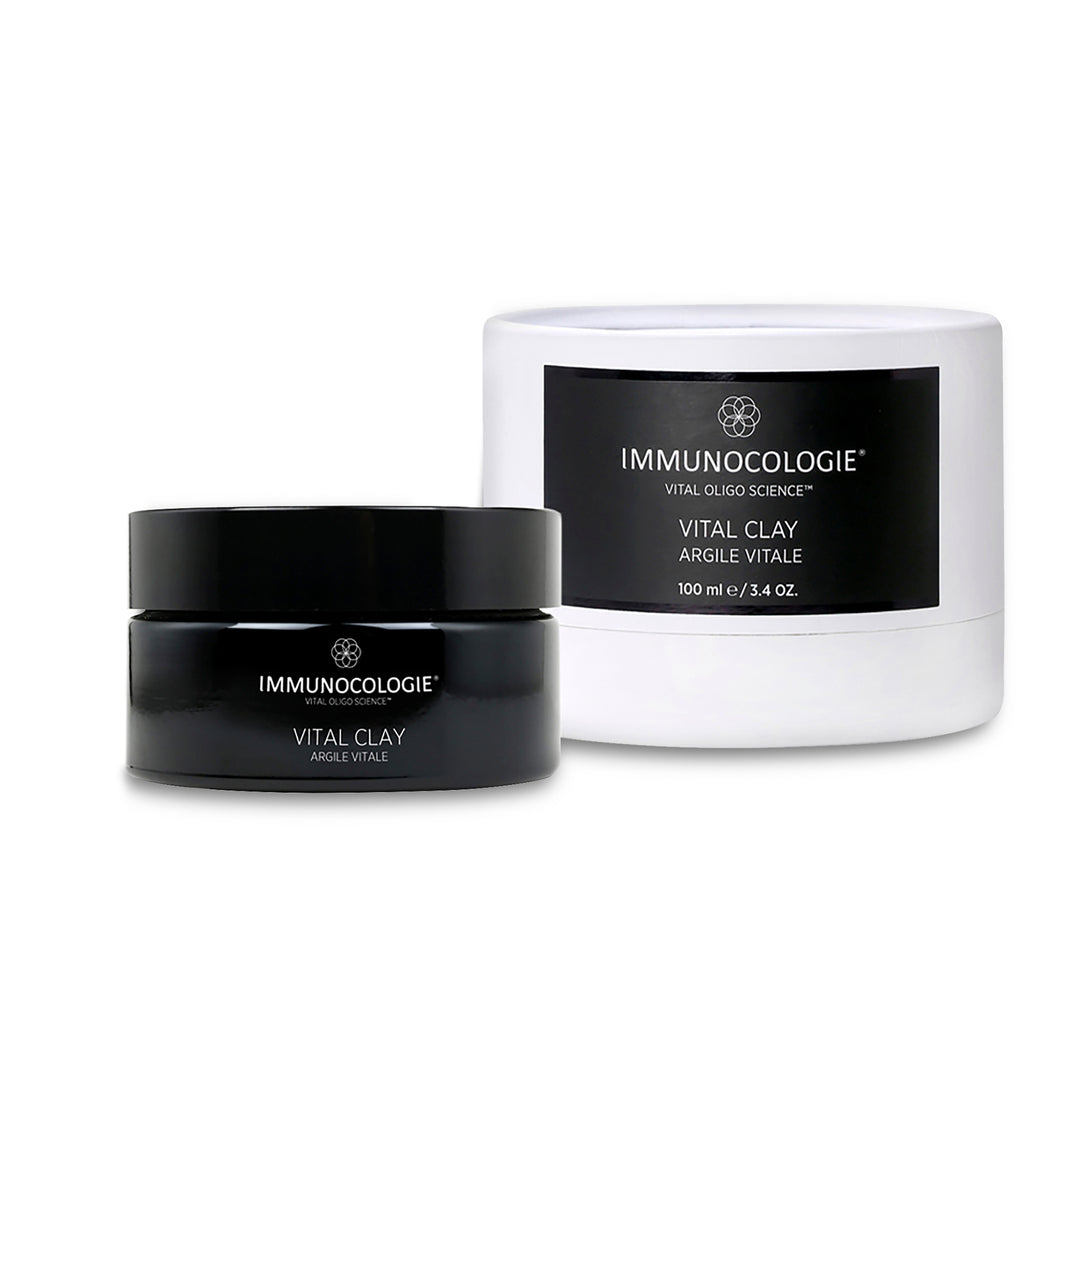 NEW Vital Clay Mask By Immunocologie